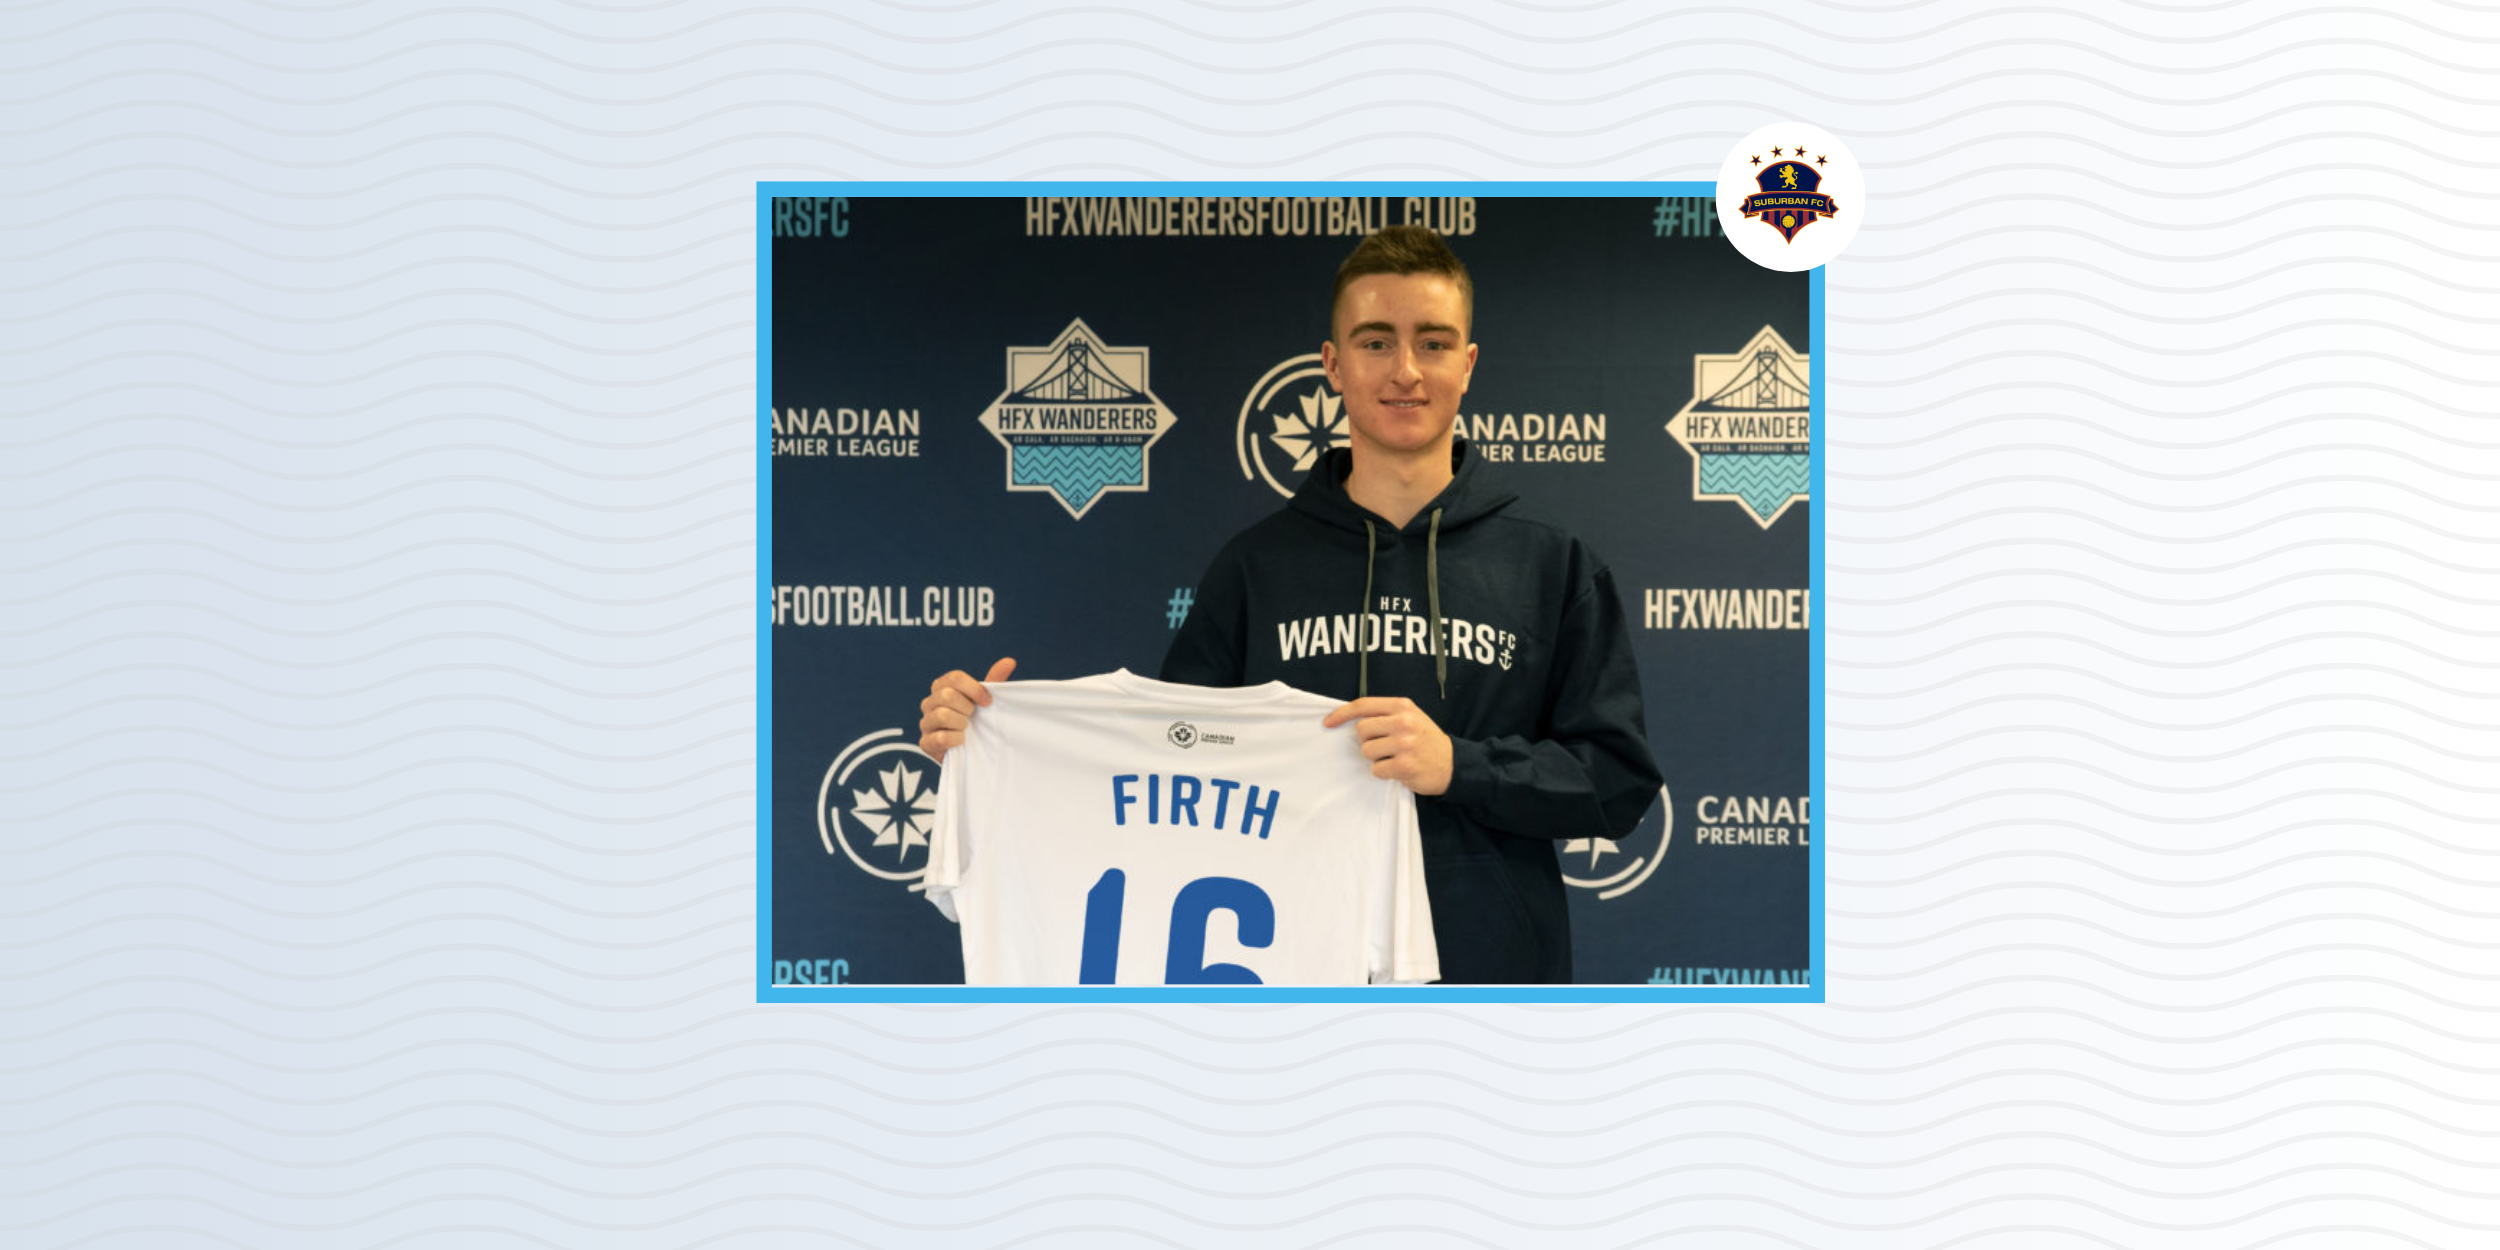 Scott Firth signs with HFX Wanderers